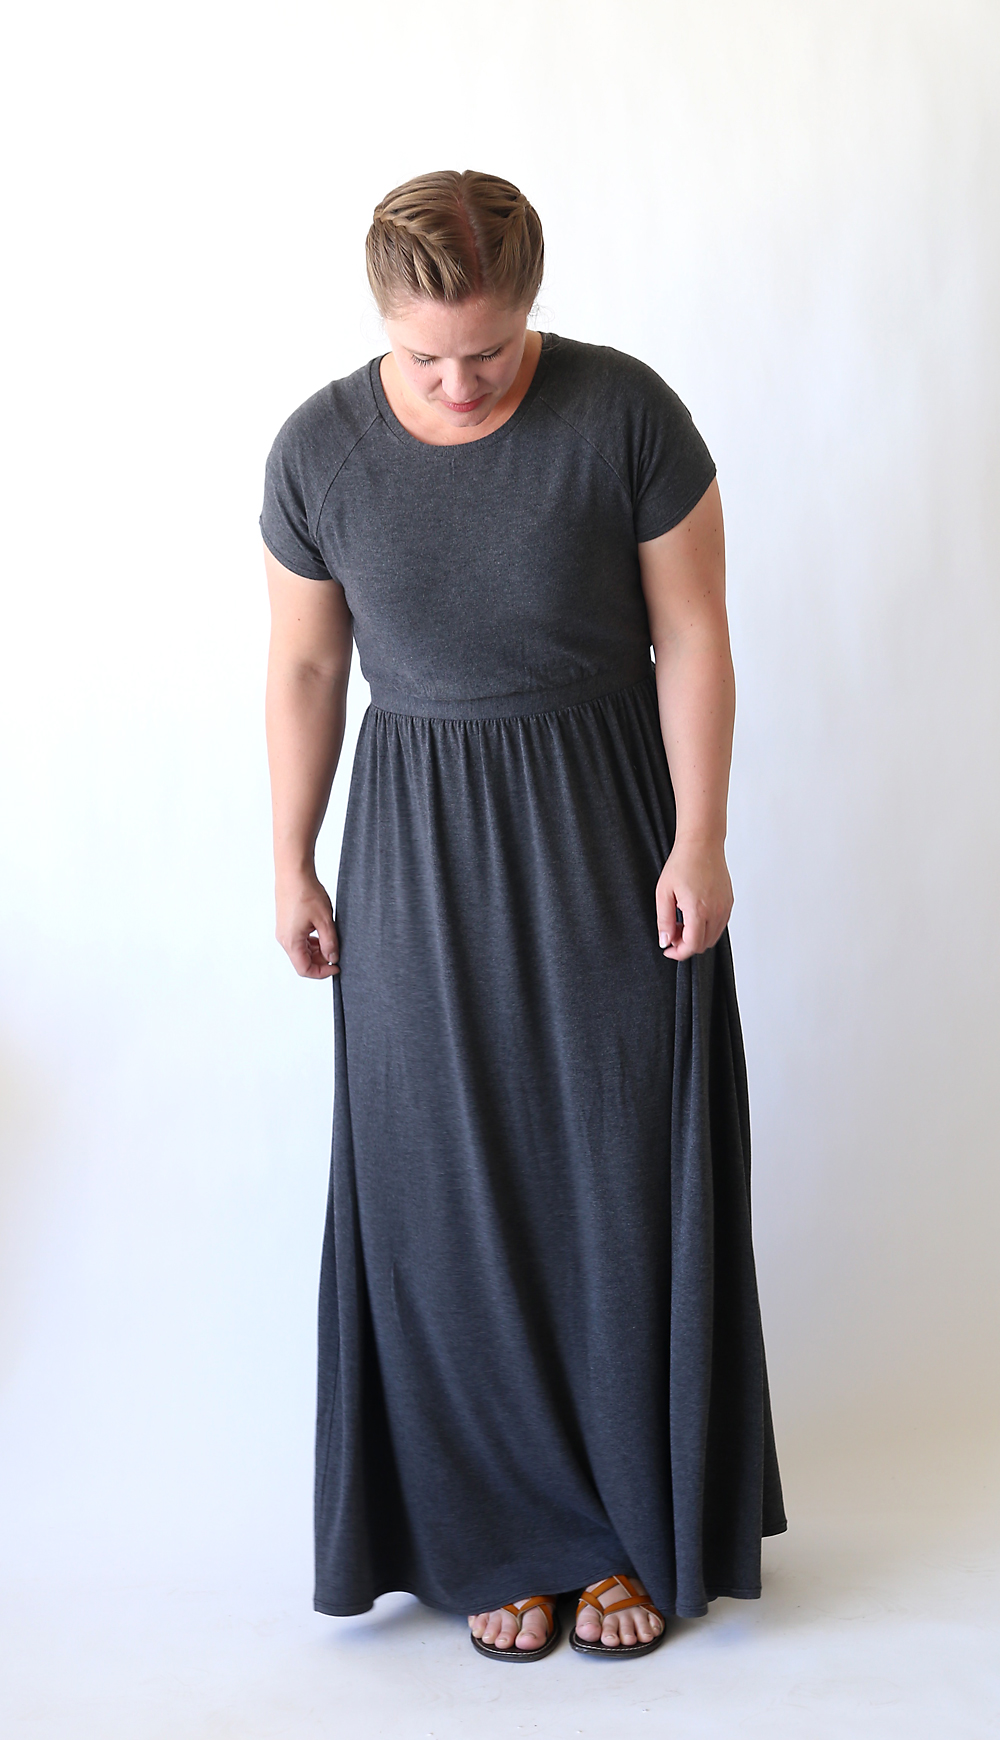 Woman wearing a long grey dress with gathered skirt